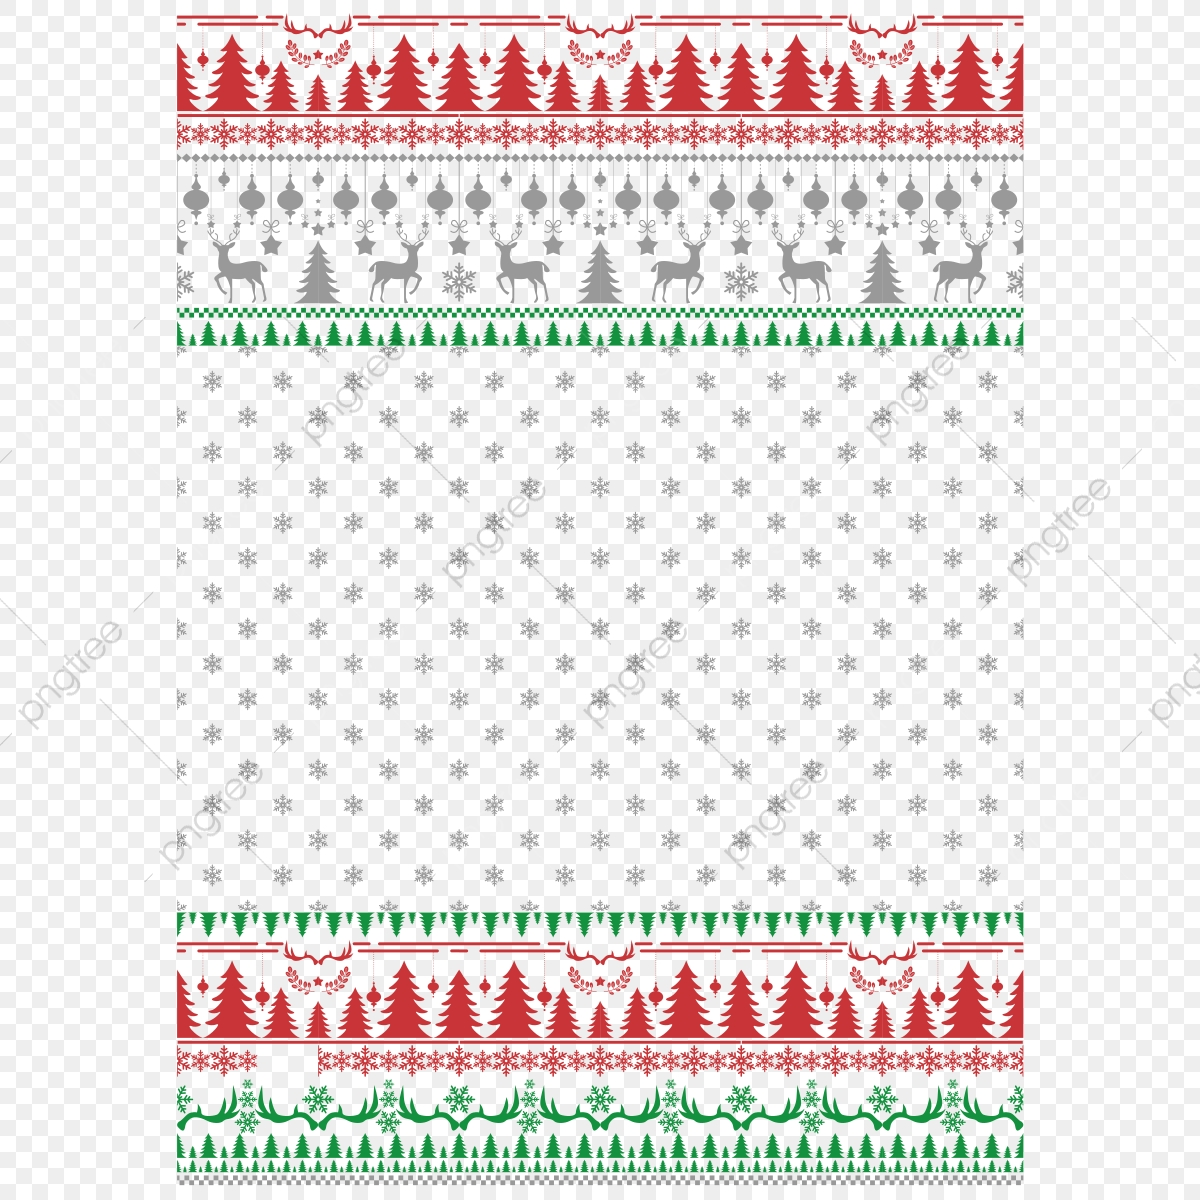 pngtree knitted elements and borders for christmas new year or winter design png image 3687567